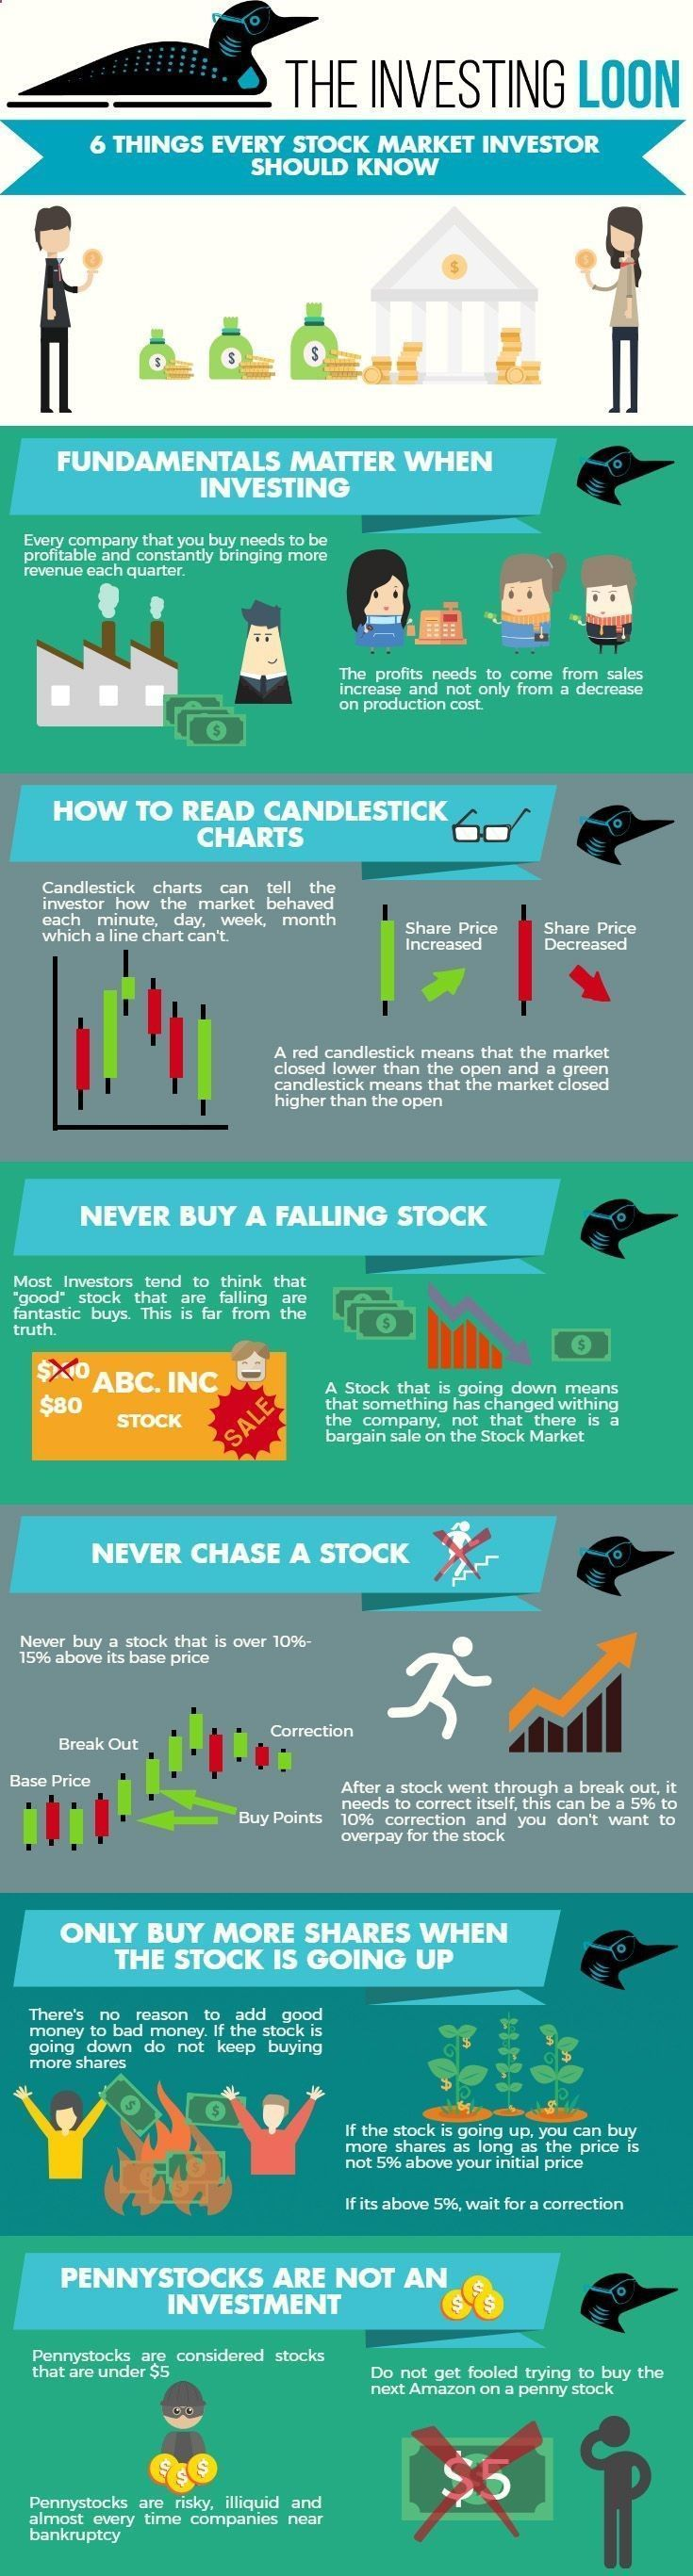 Trade Finance Business - 6 Thigs Every Stock Market Investor Should Know. Stock markek for beginners and stock market tips - Whether you wish to be a successful Scalper, Day Trader, Swing Trader, ot Position Trader ANY financial instrument can be traded including: Forex, Futures, Commodities, Stocks, E-Minis, Metals, Binary Options, Any Market. #stockmarkettrading #forexbeginner